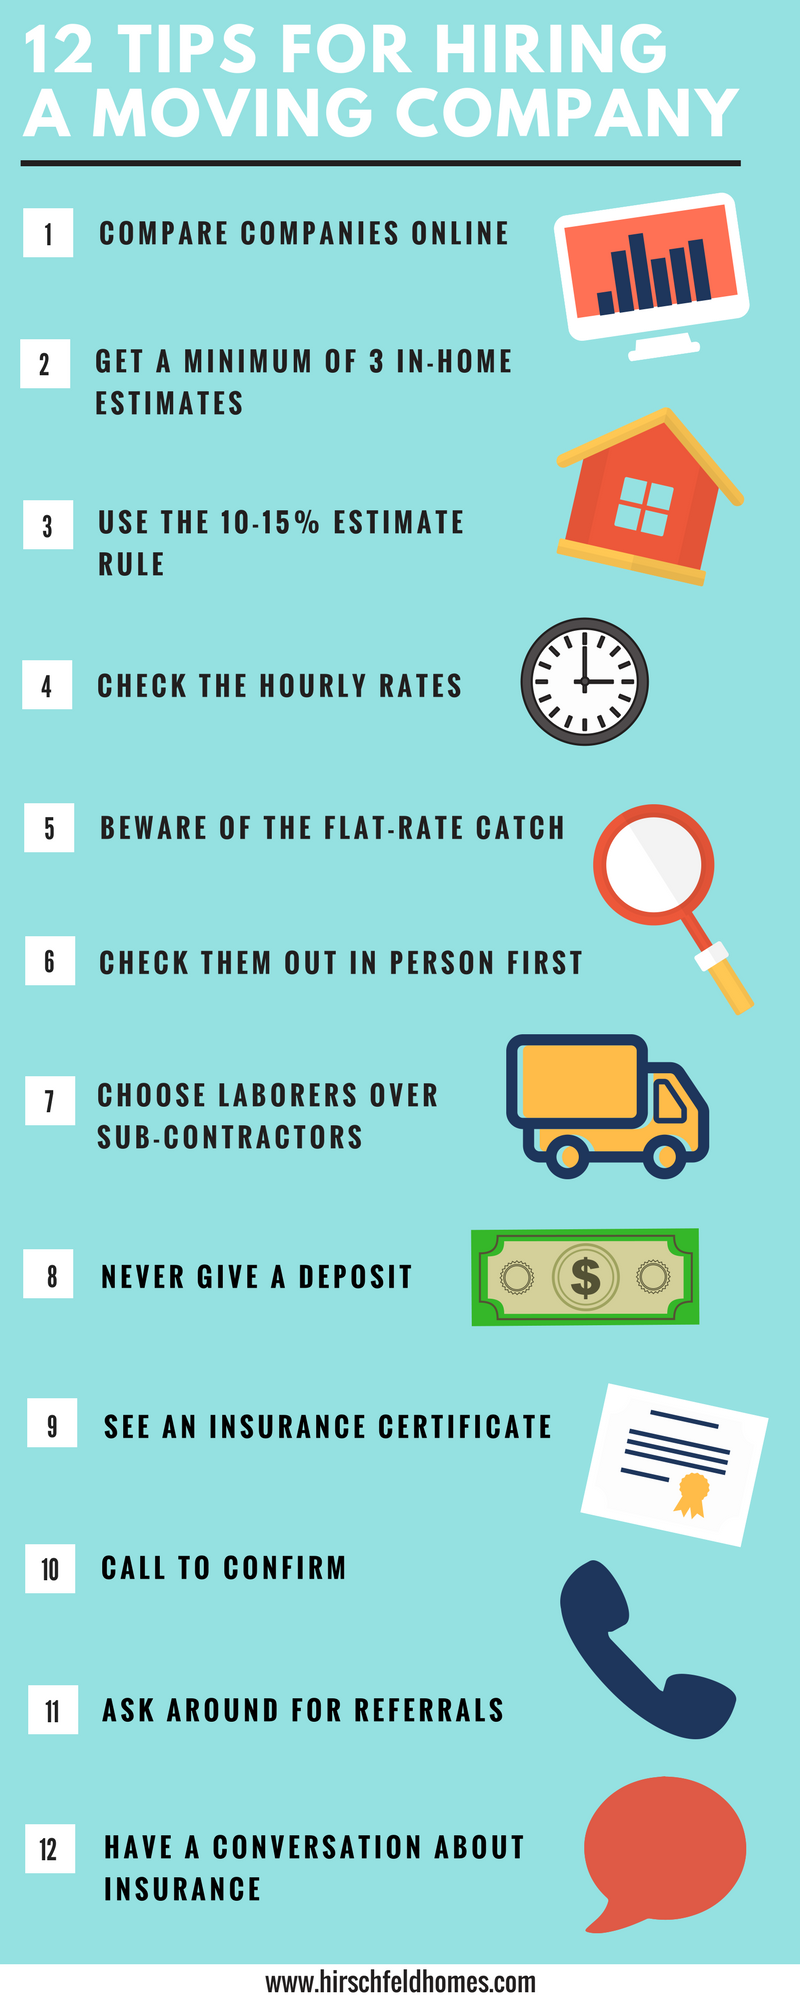 12 tips for hiring a moving company infographic